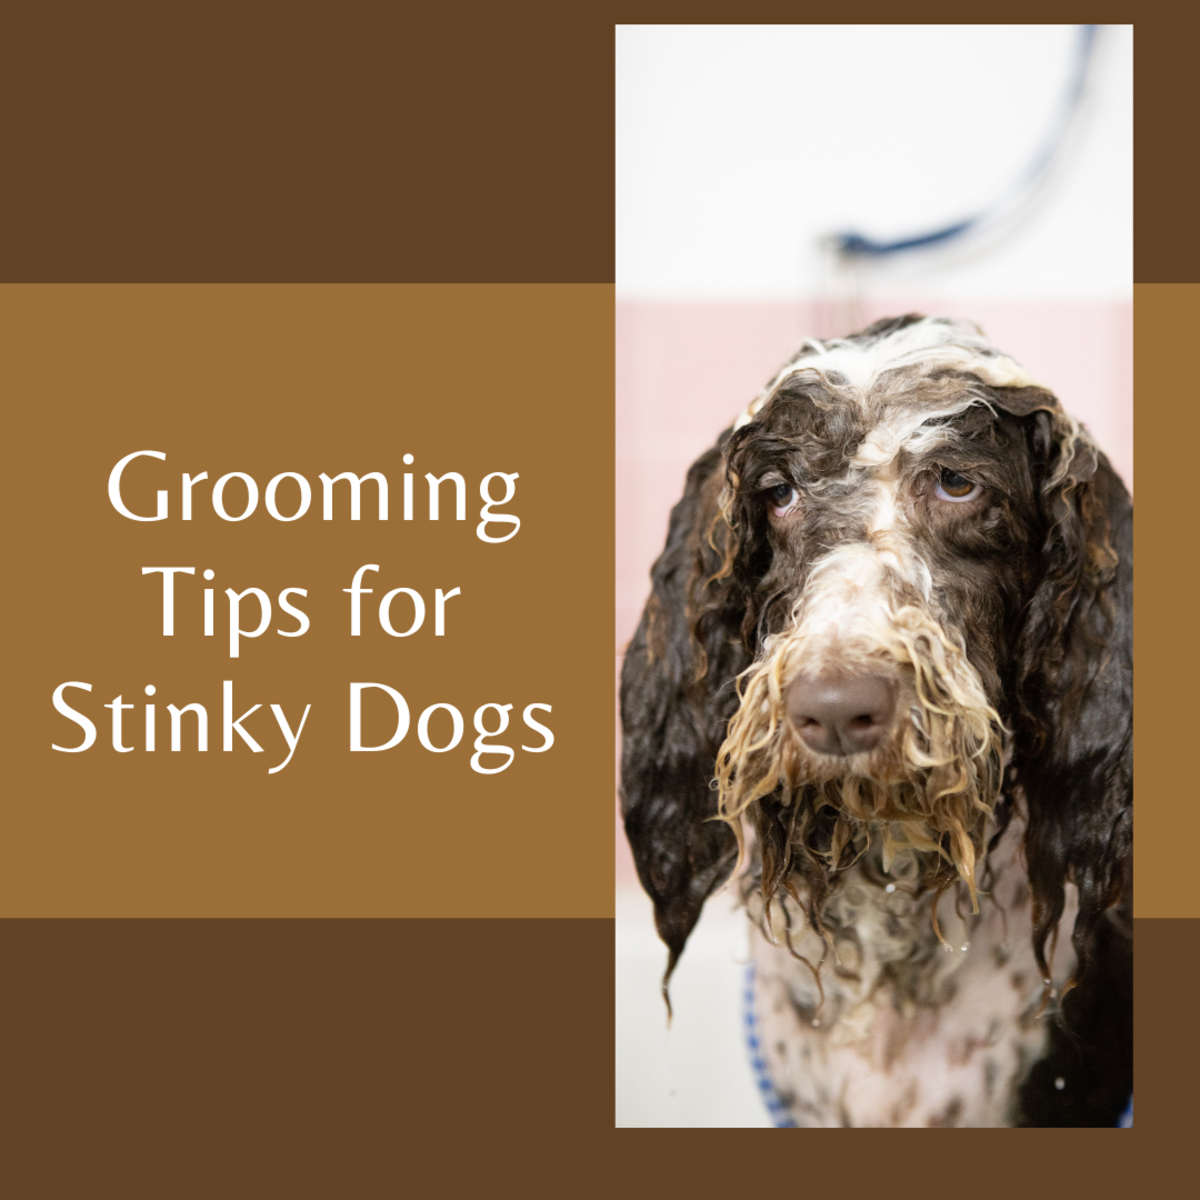 Learn how to keep your dog's stinky odor at bay.